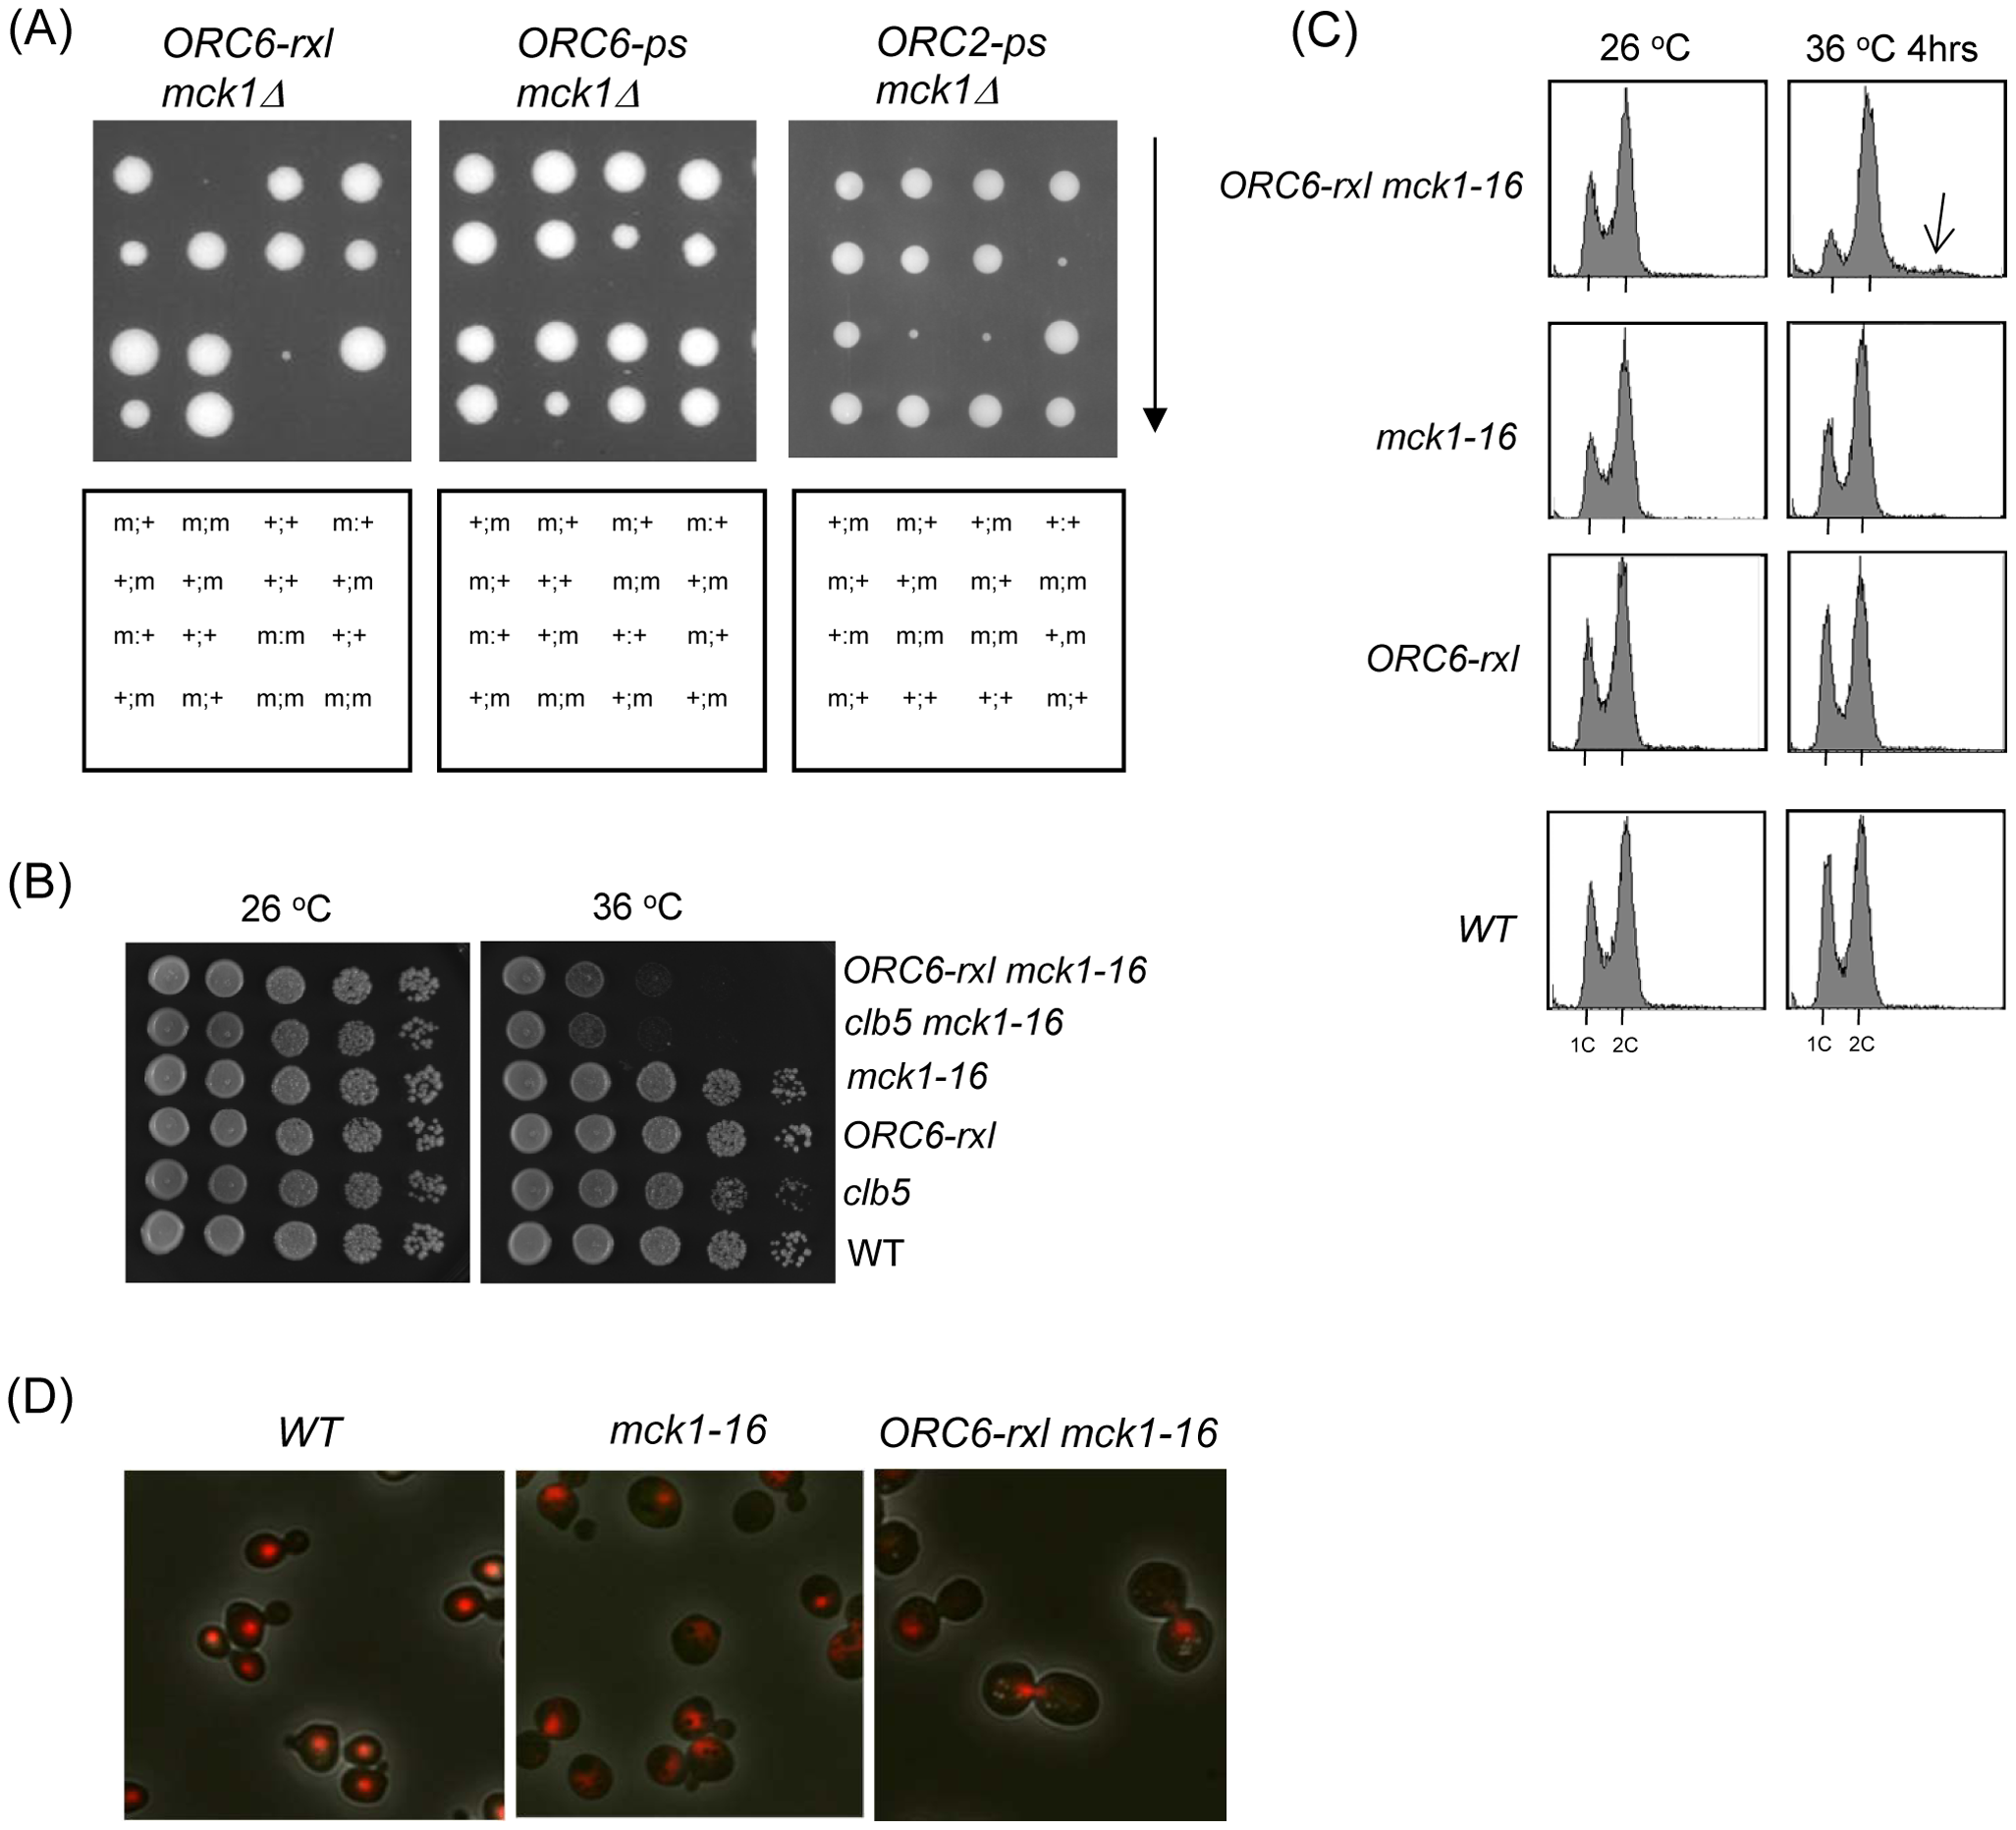 Synthetic lethality and mitotic arrest was induced in the <i>ORC6-rxl mck1-16</i> cells.